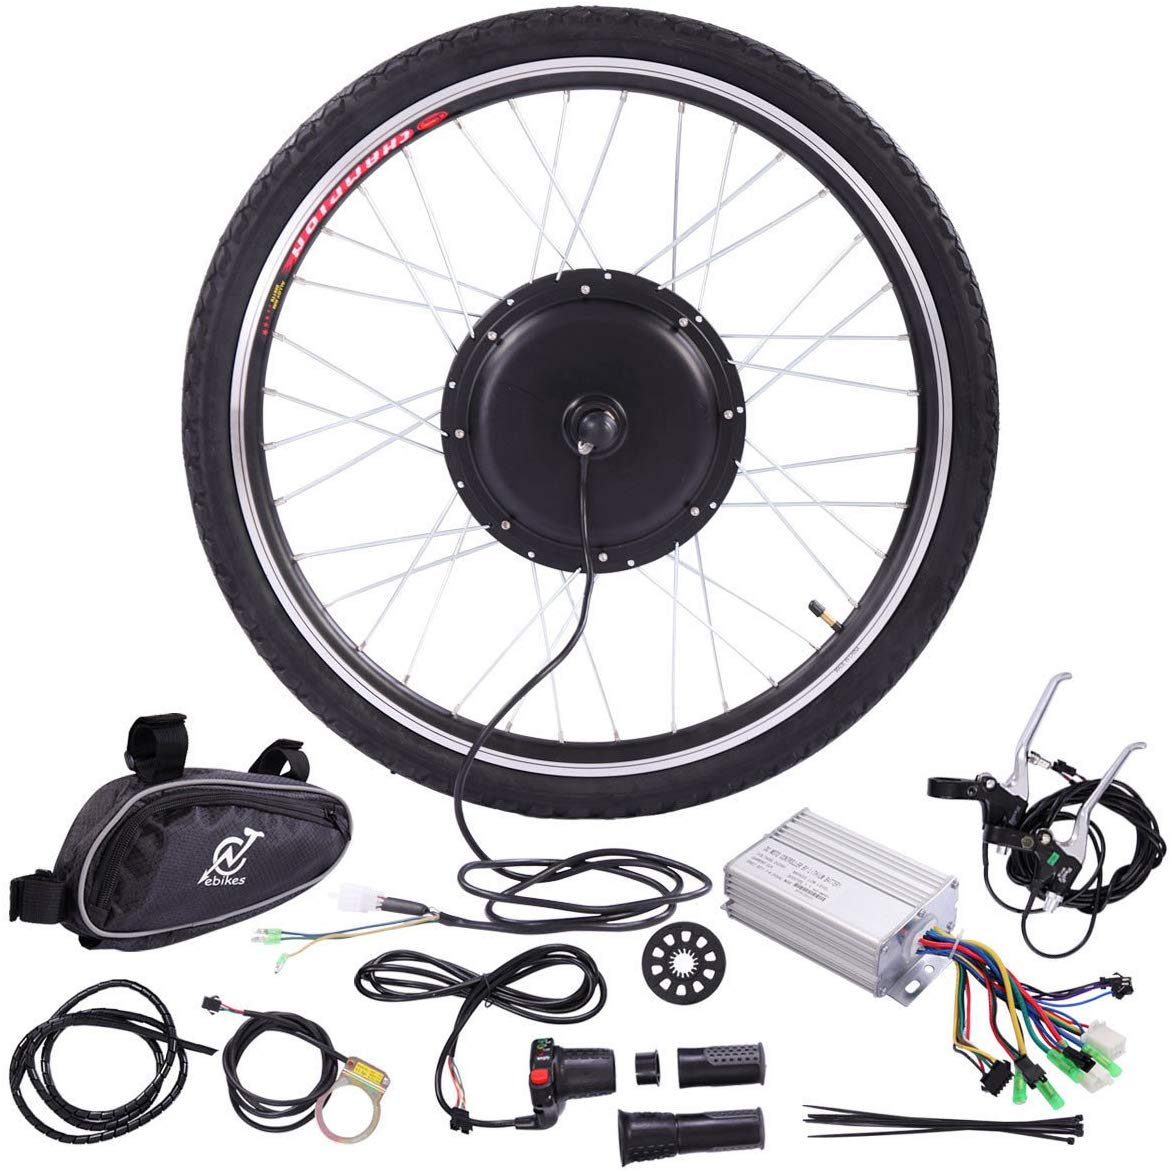 AXPETY 36V 500W E-Bike Conversion Kit Review